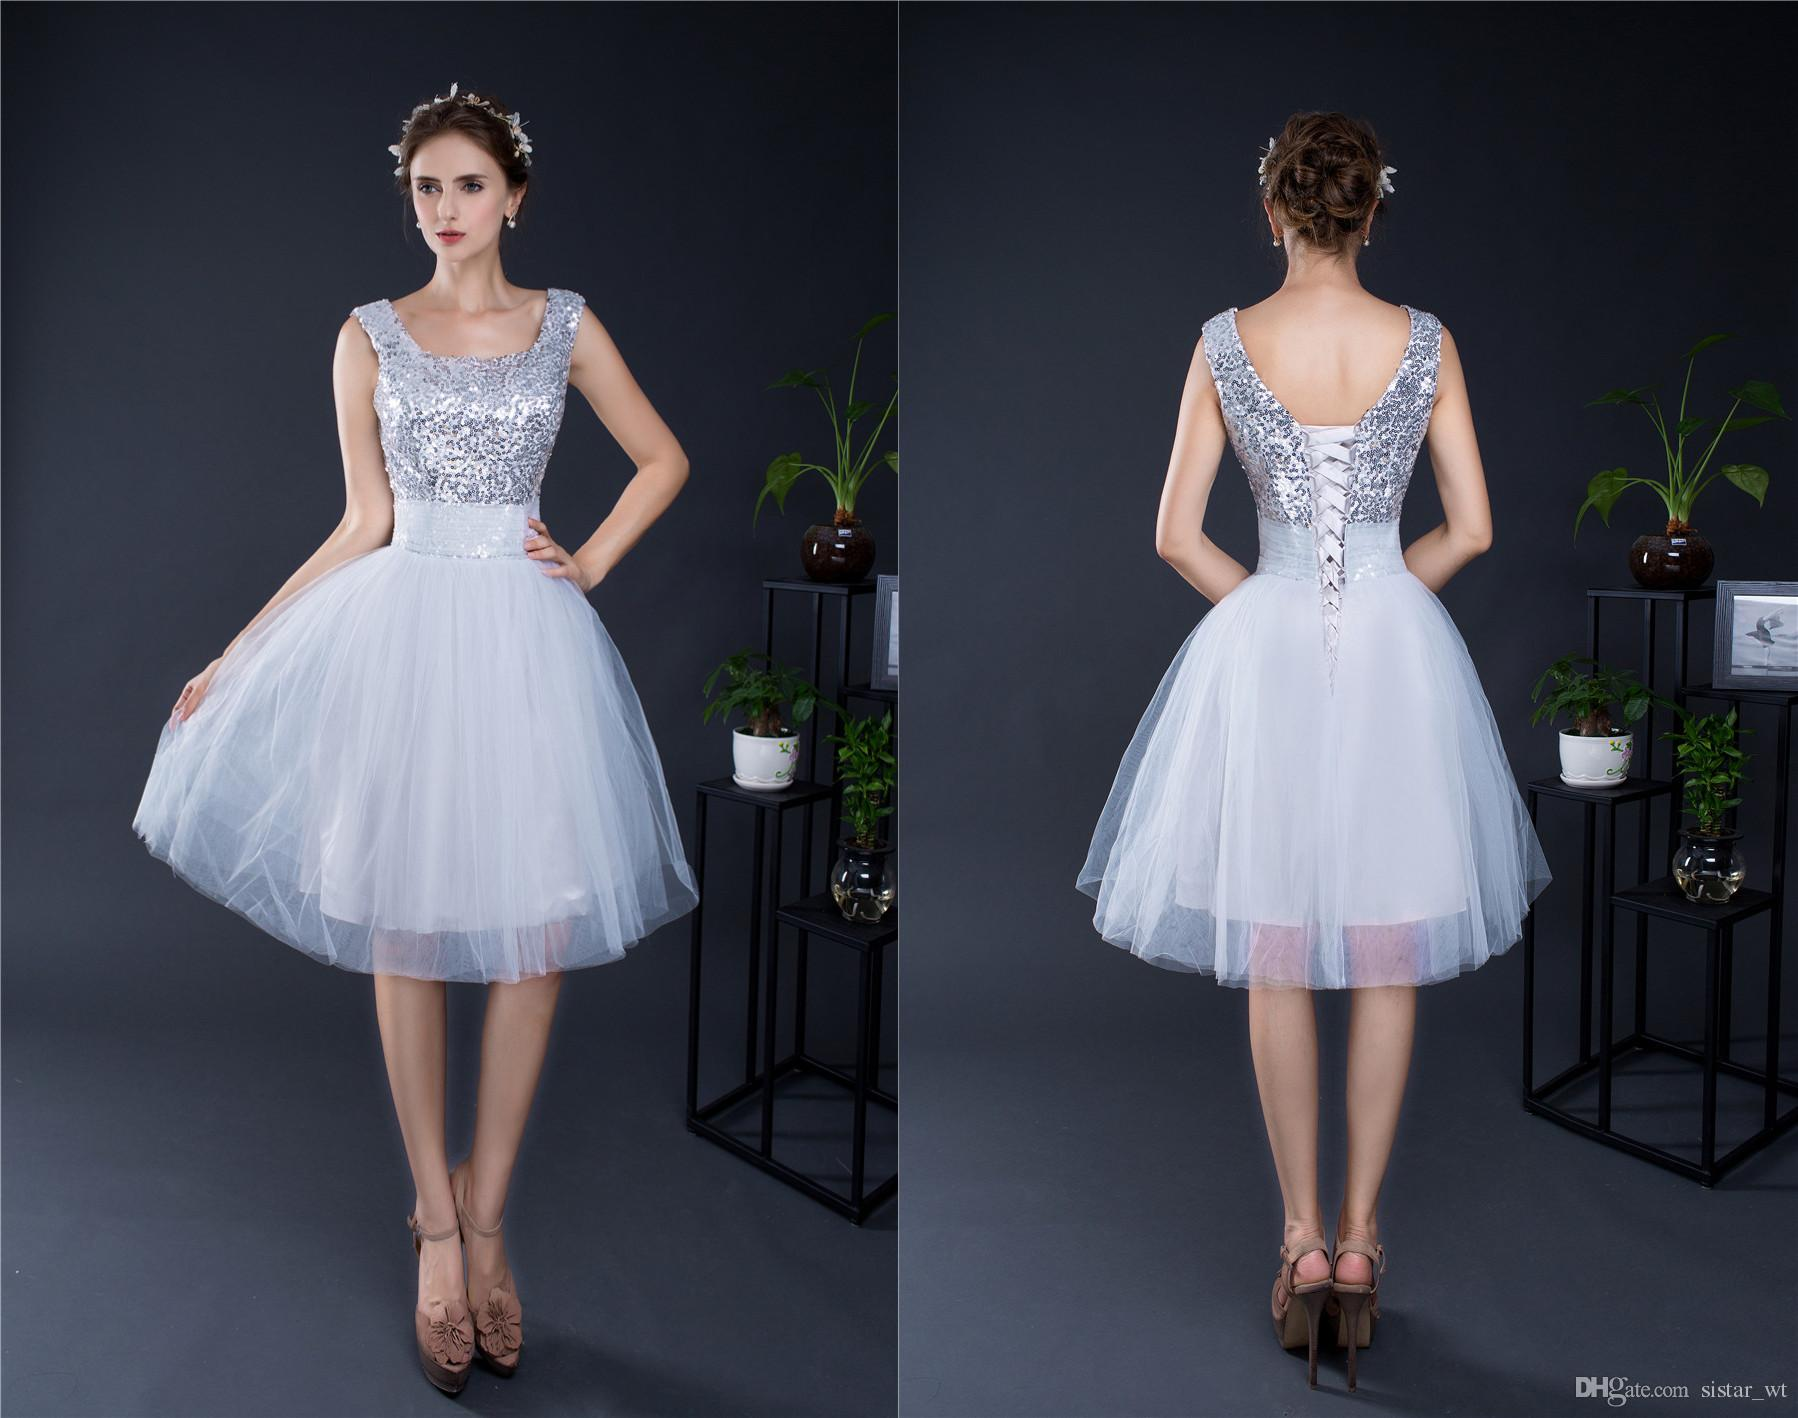 2017 charming sexy sequins silver short women cocktail gowns lady 2017 charming sexy sequins silver short women cocktail gowns lady big girls back to school homecoming prom party evening mini dresses short bridesmaid ombrellifo Choice Image